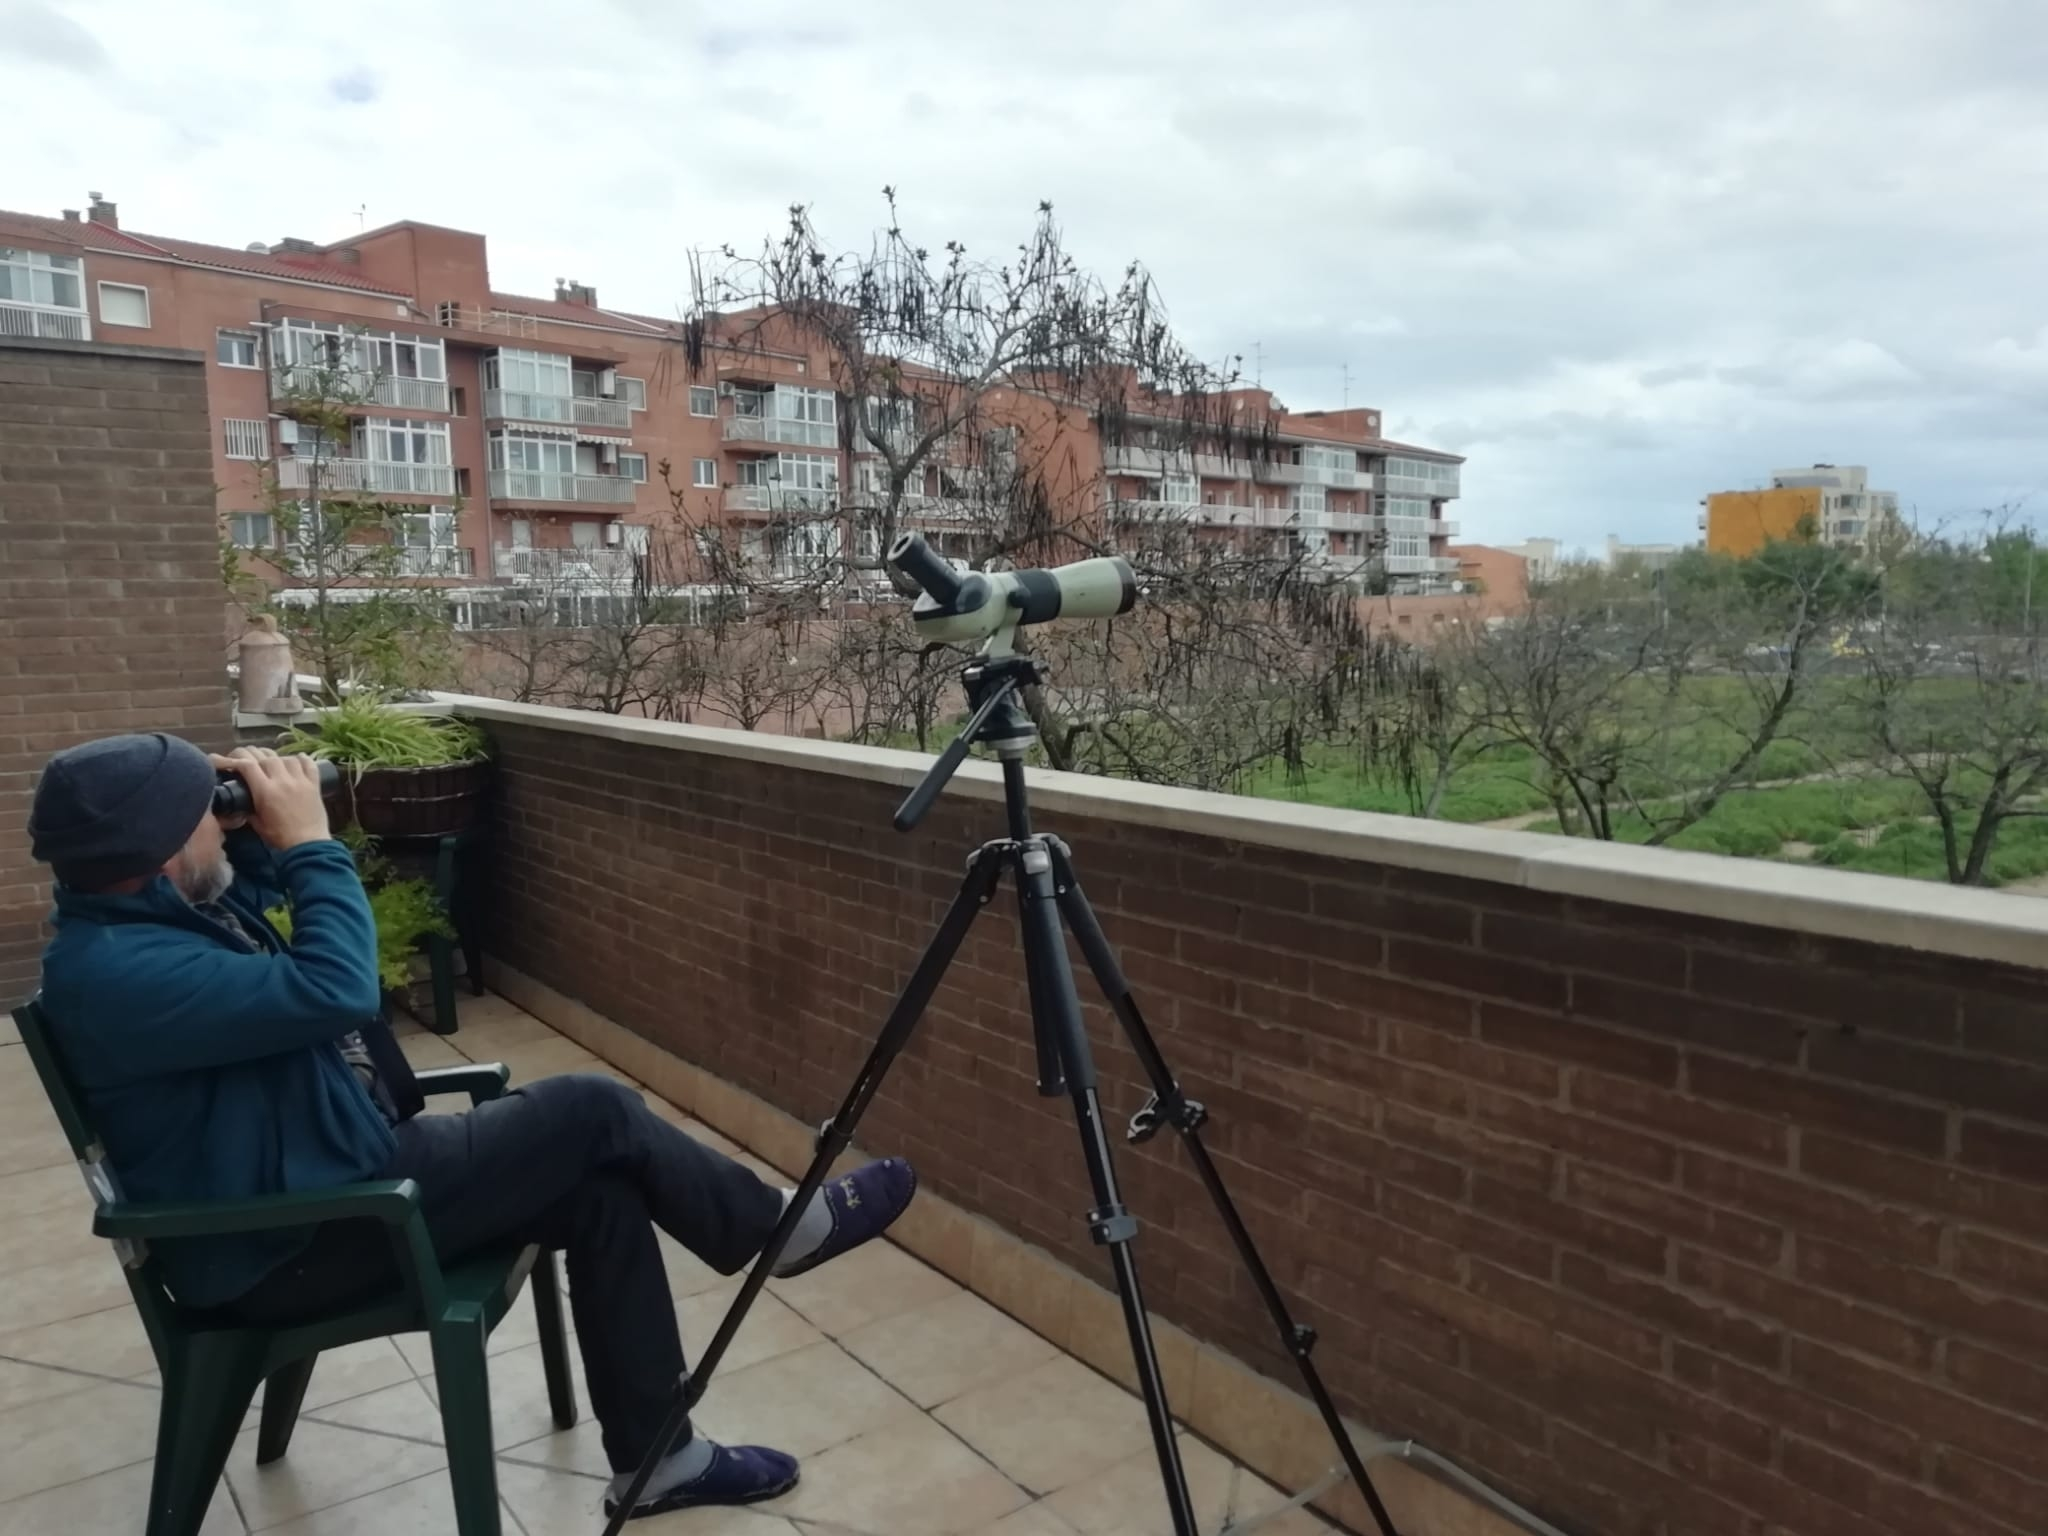 Balcony birding in Lleida